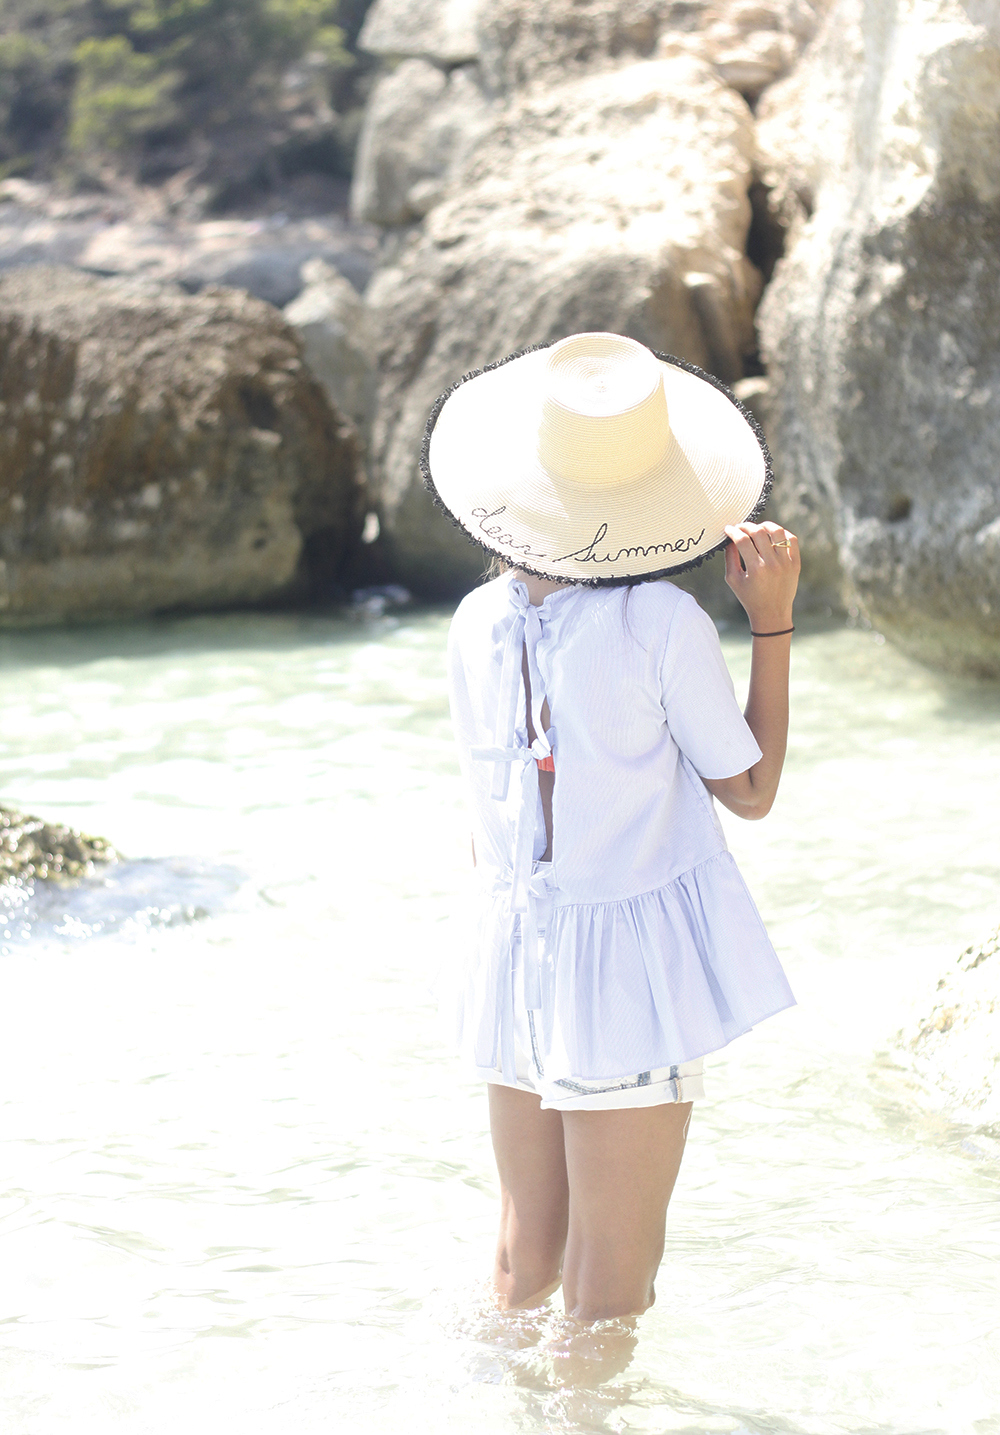 beach outfit blue blouse with bows shorts hat sunnies summer fashion style01